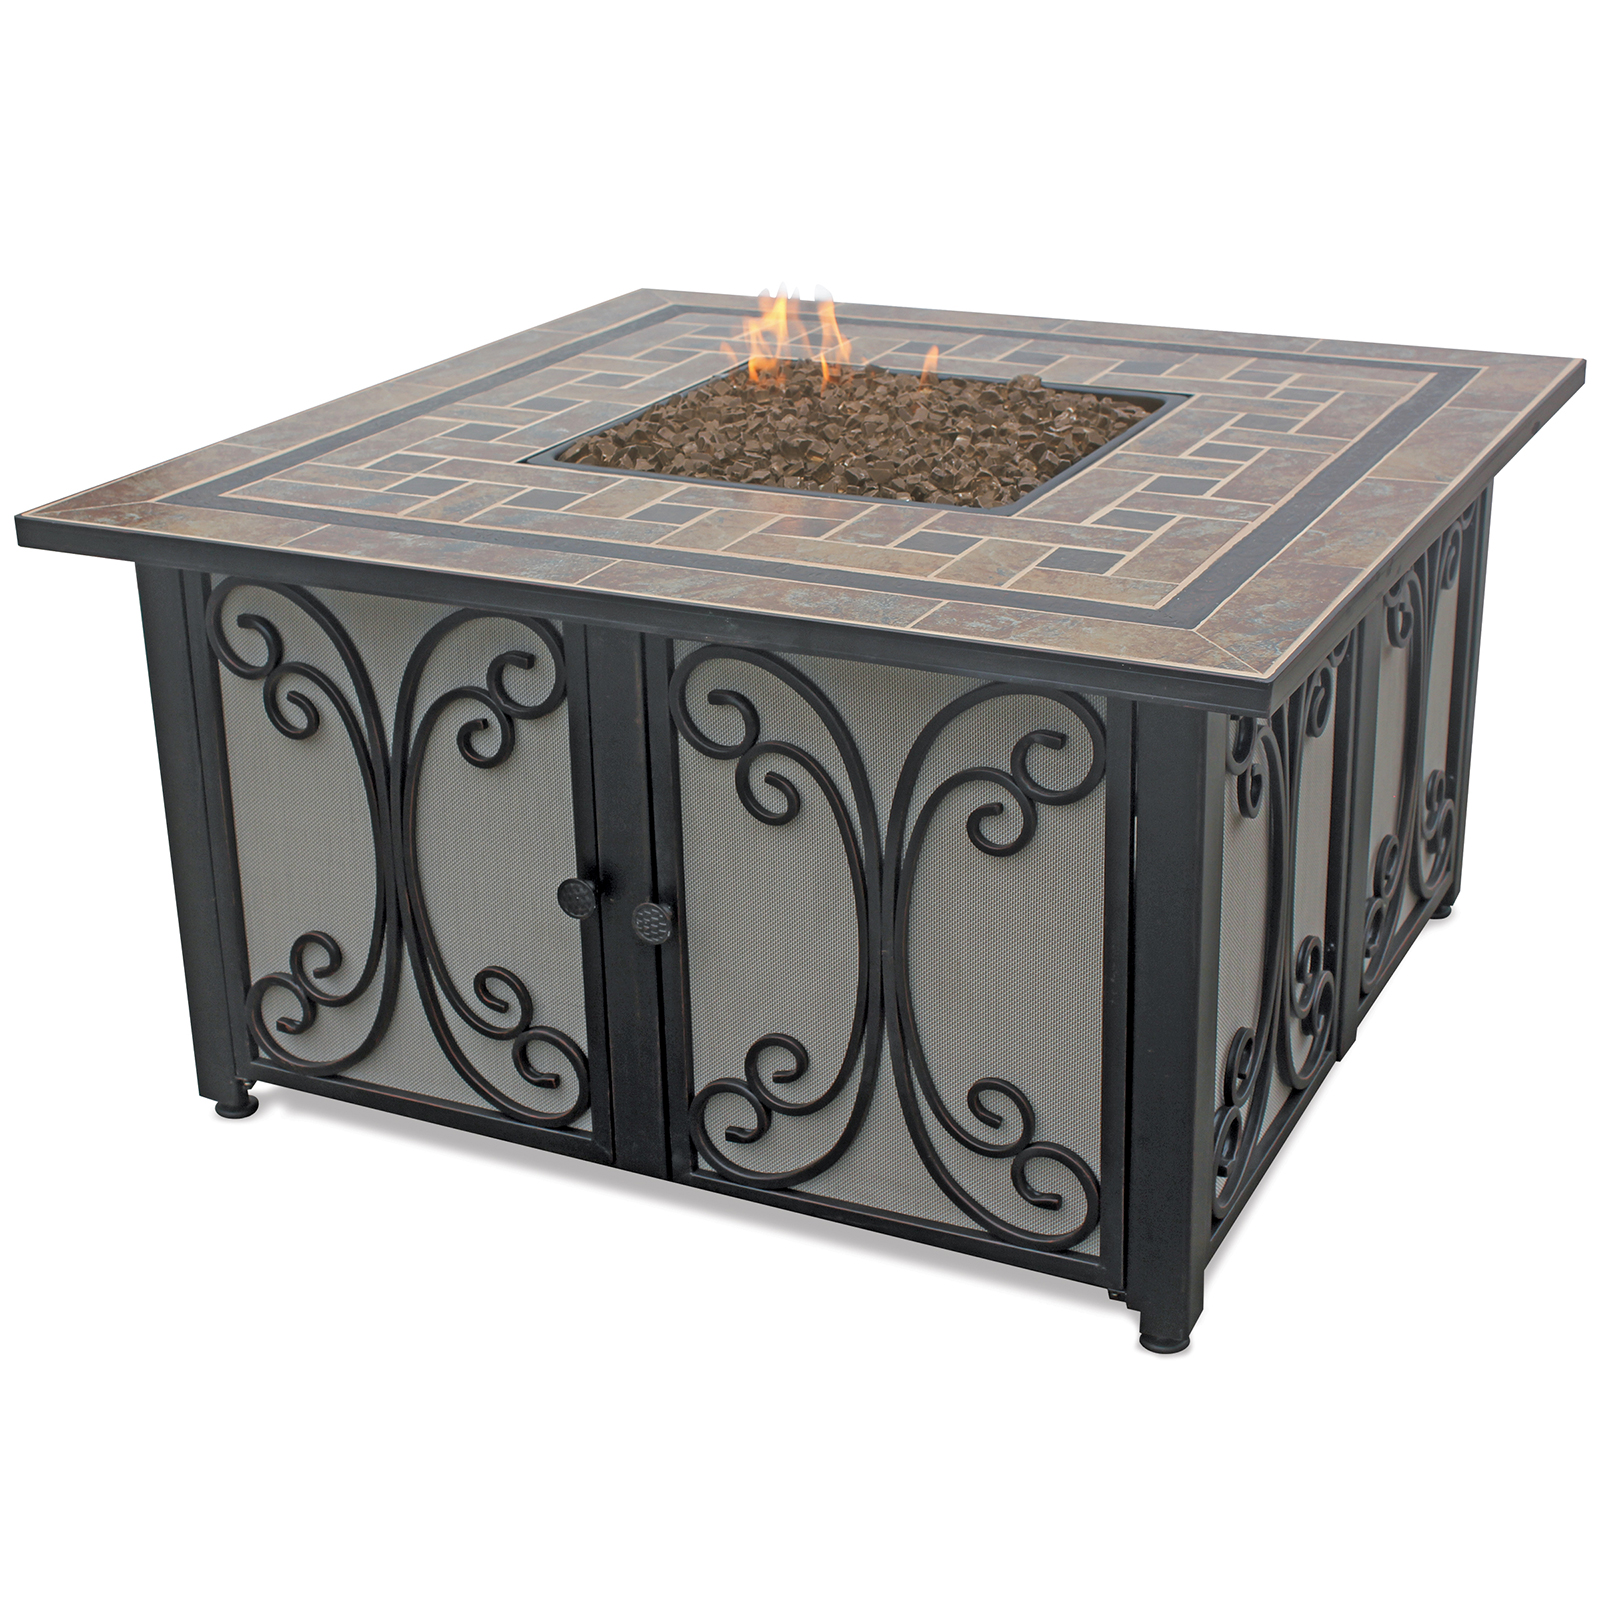 Endless Summer Outdoor Fire Table Lp Gas With Slate Tile